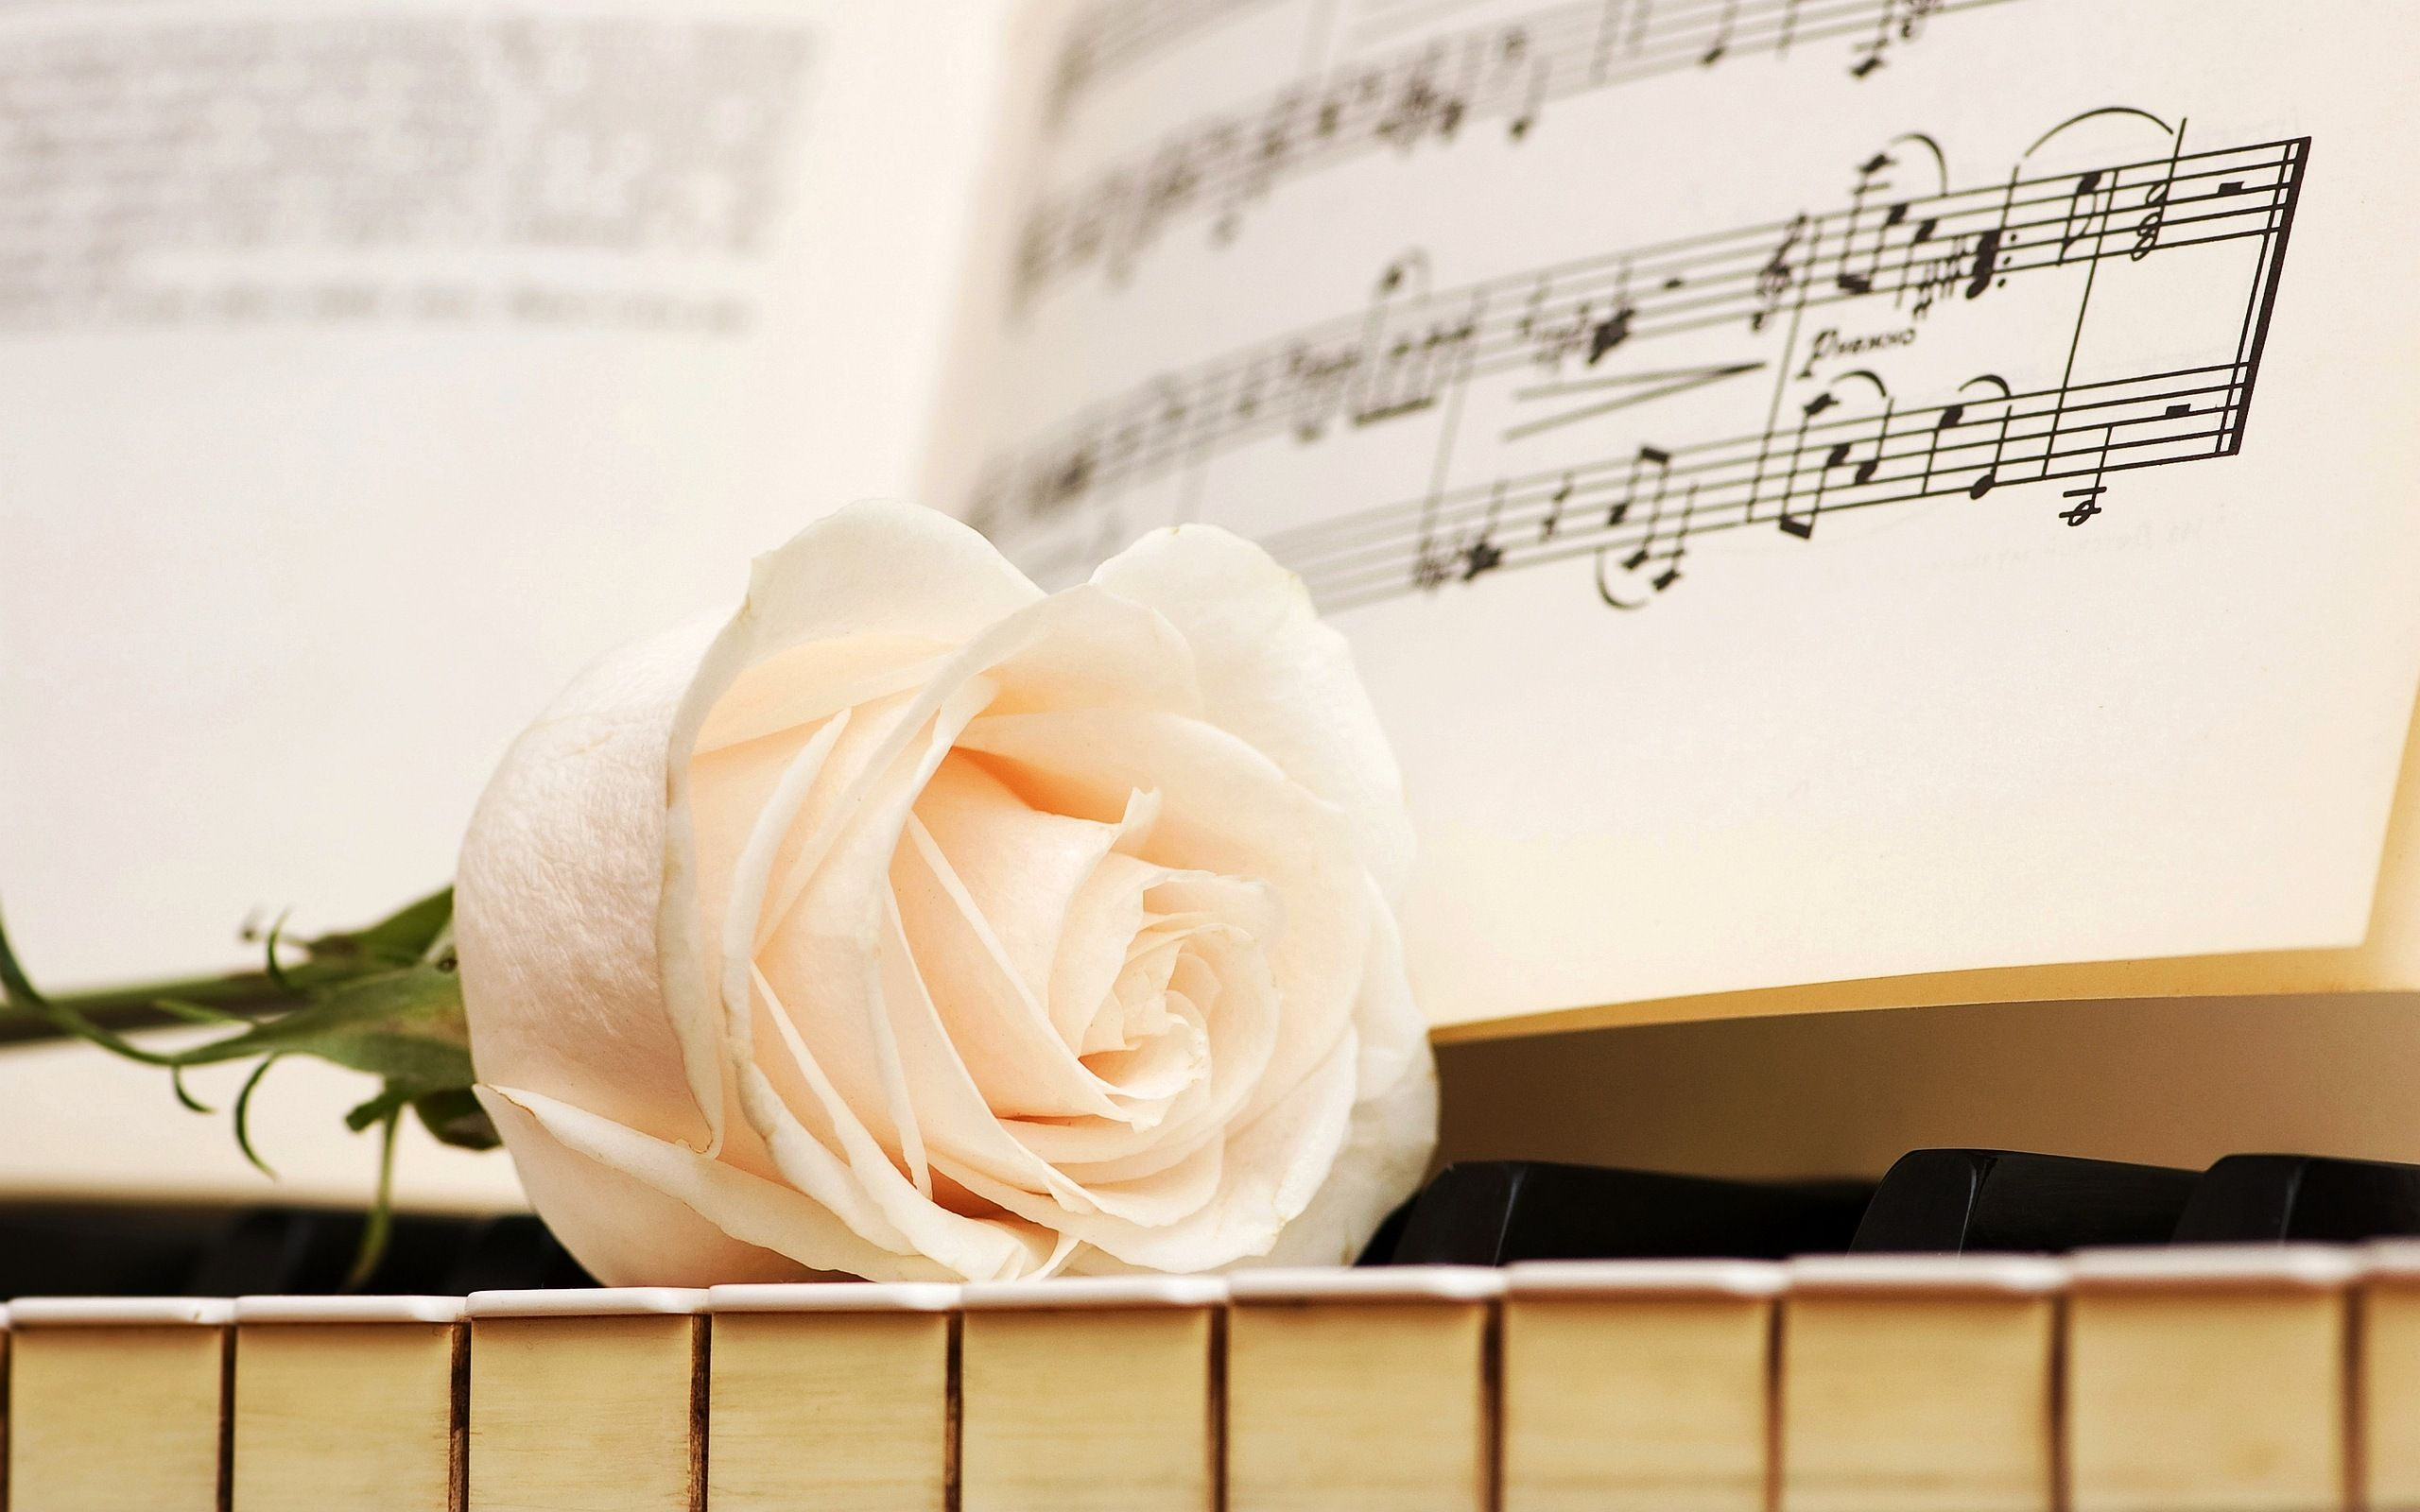 Piano Music Pink Rose Personalized Poster Wall Art Home Decor Gift Made In USA